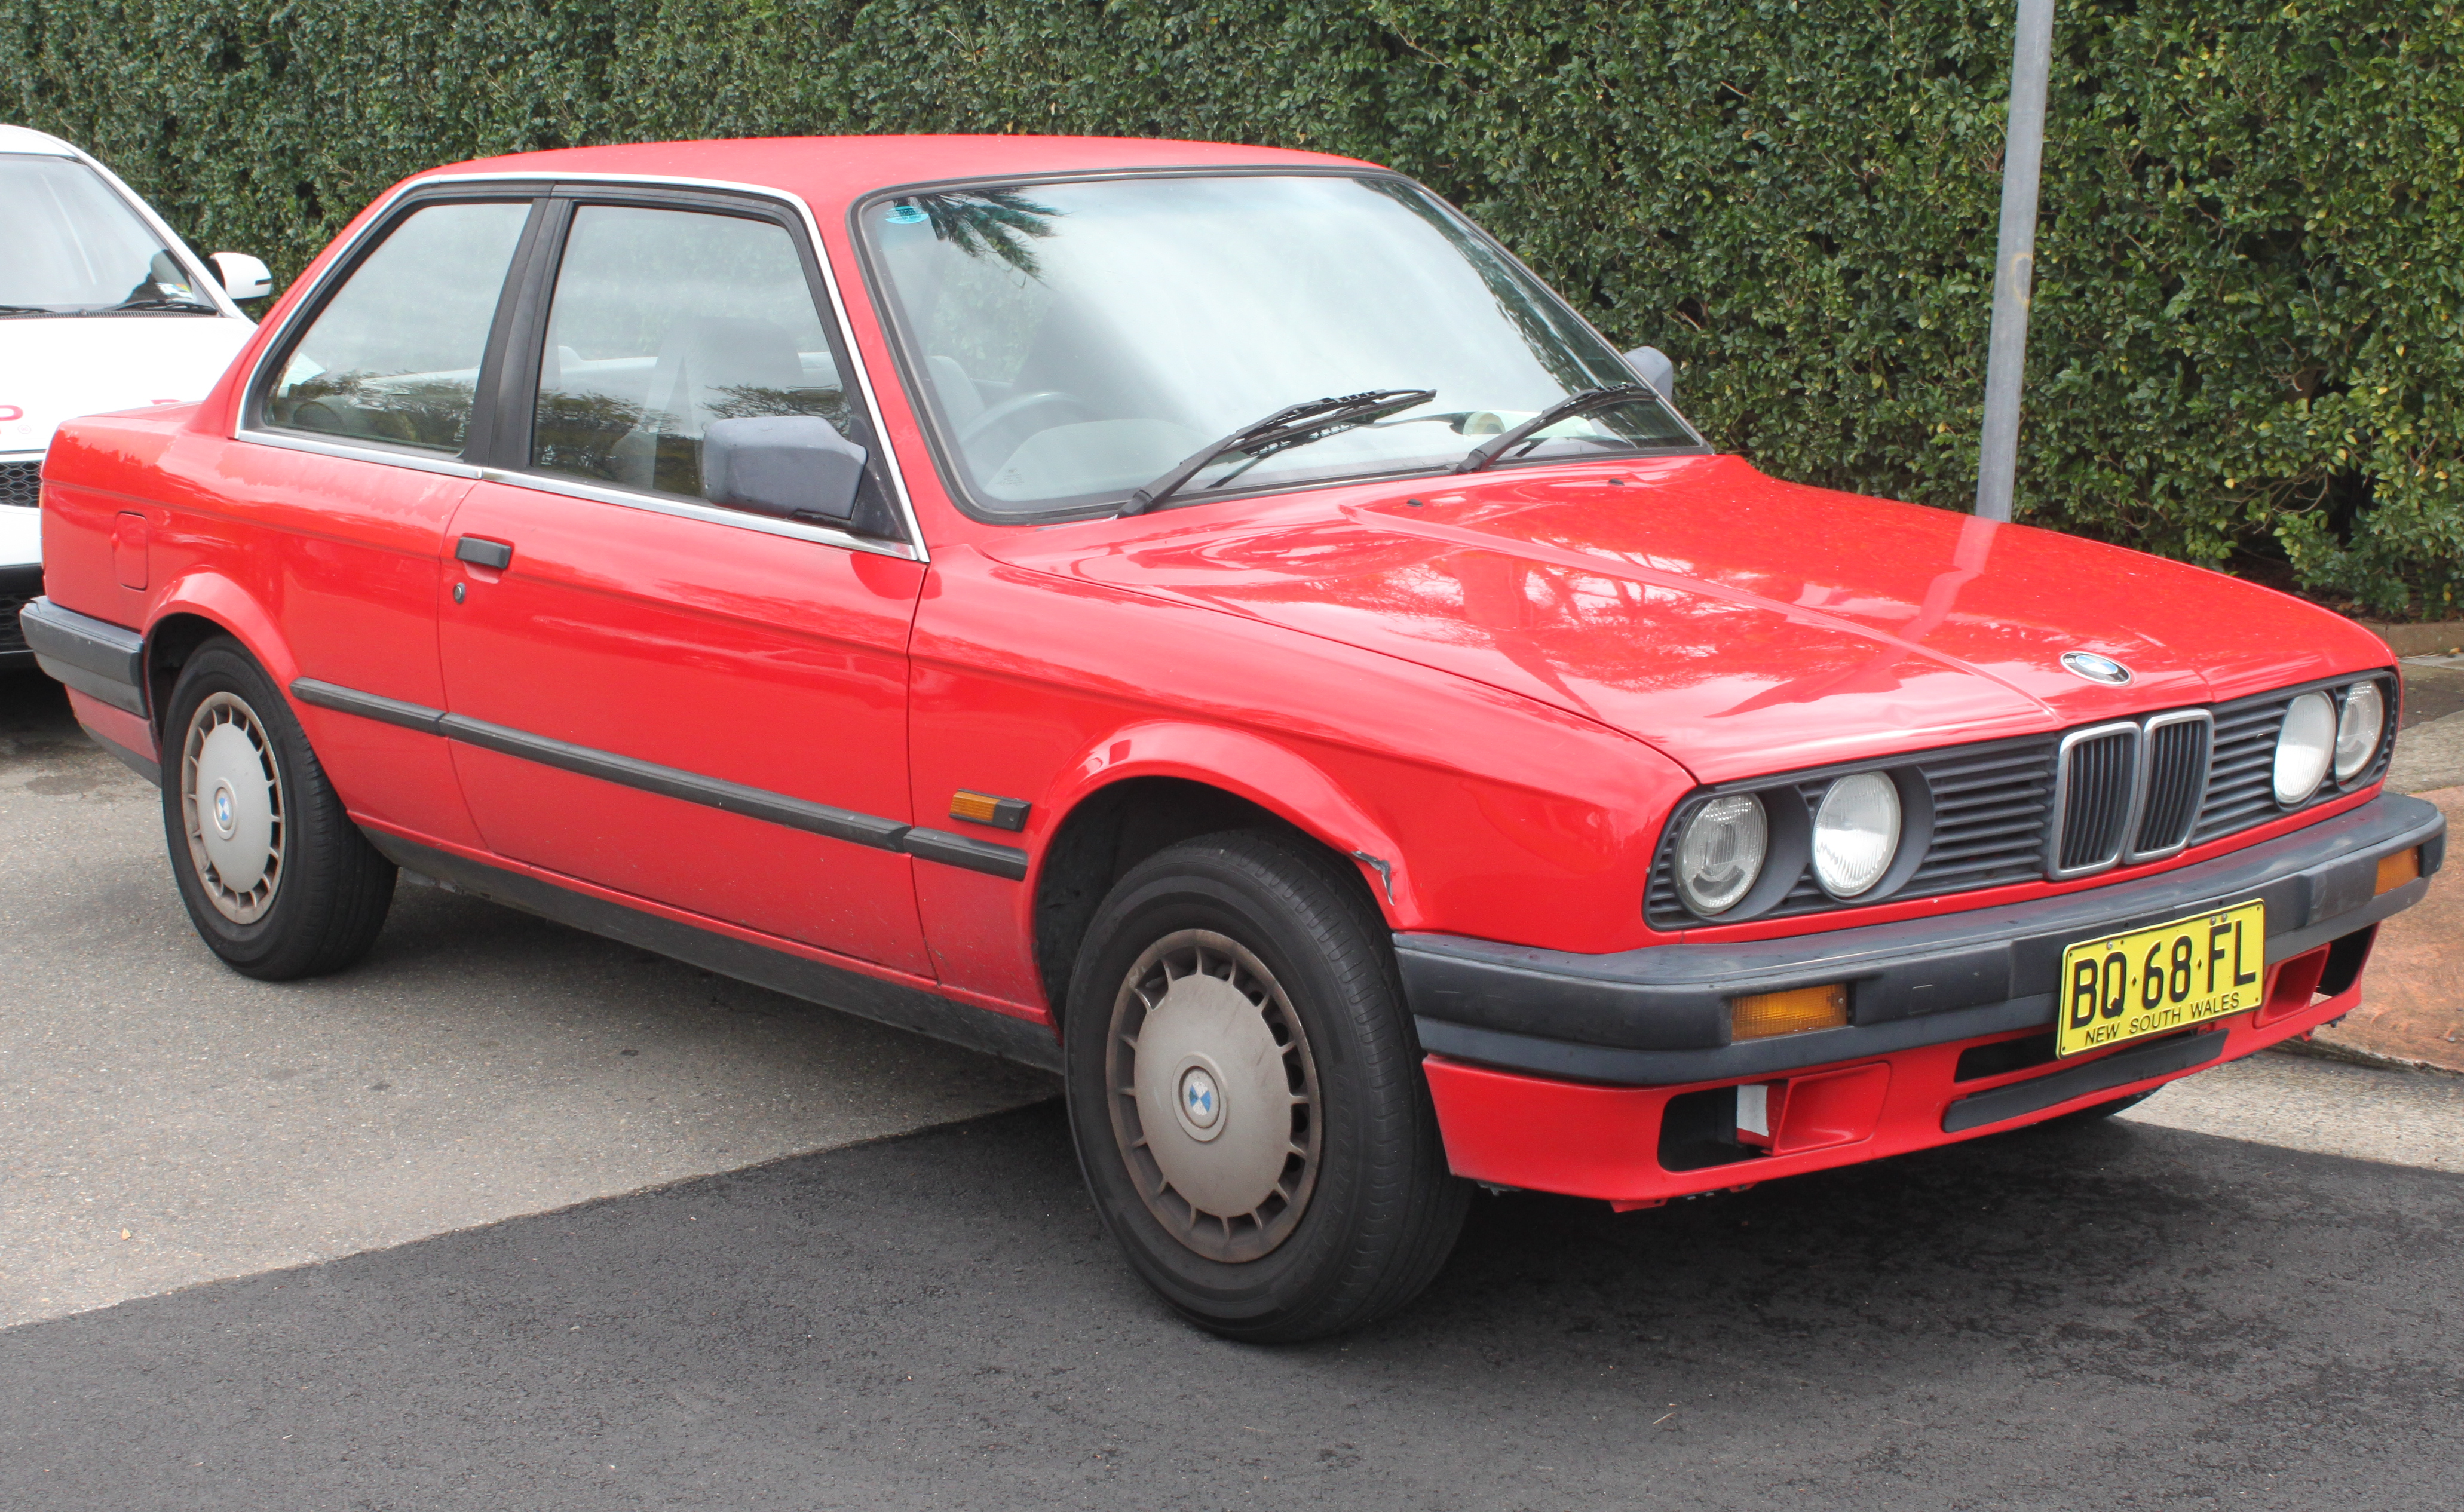 file 1990 bmw 318i e30 2 door sedan 22028060738 jpg wikimedia commons. Black Bedroom Furniture Sets. Home Design Ideas